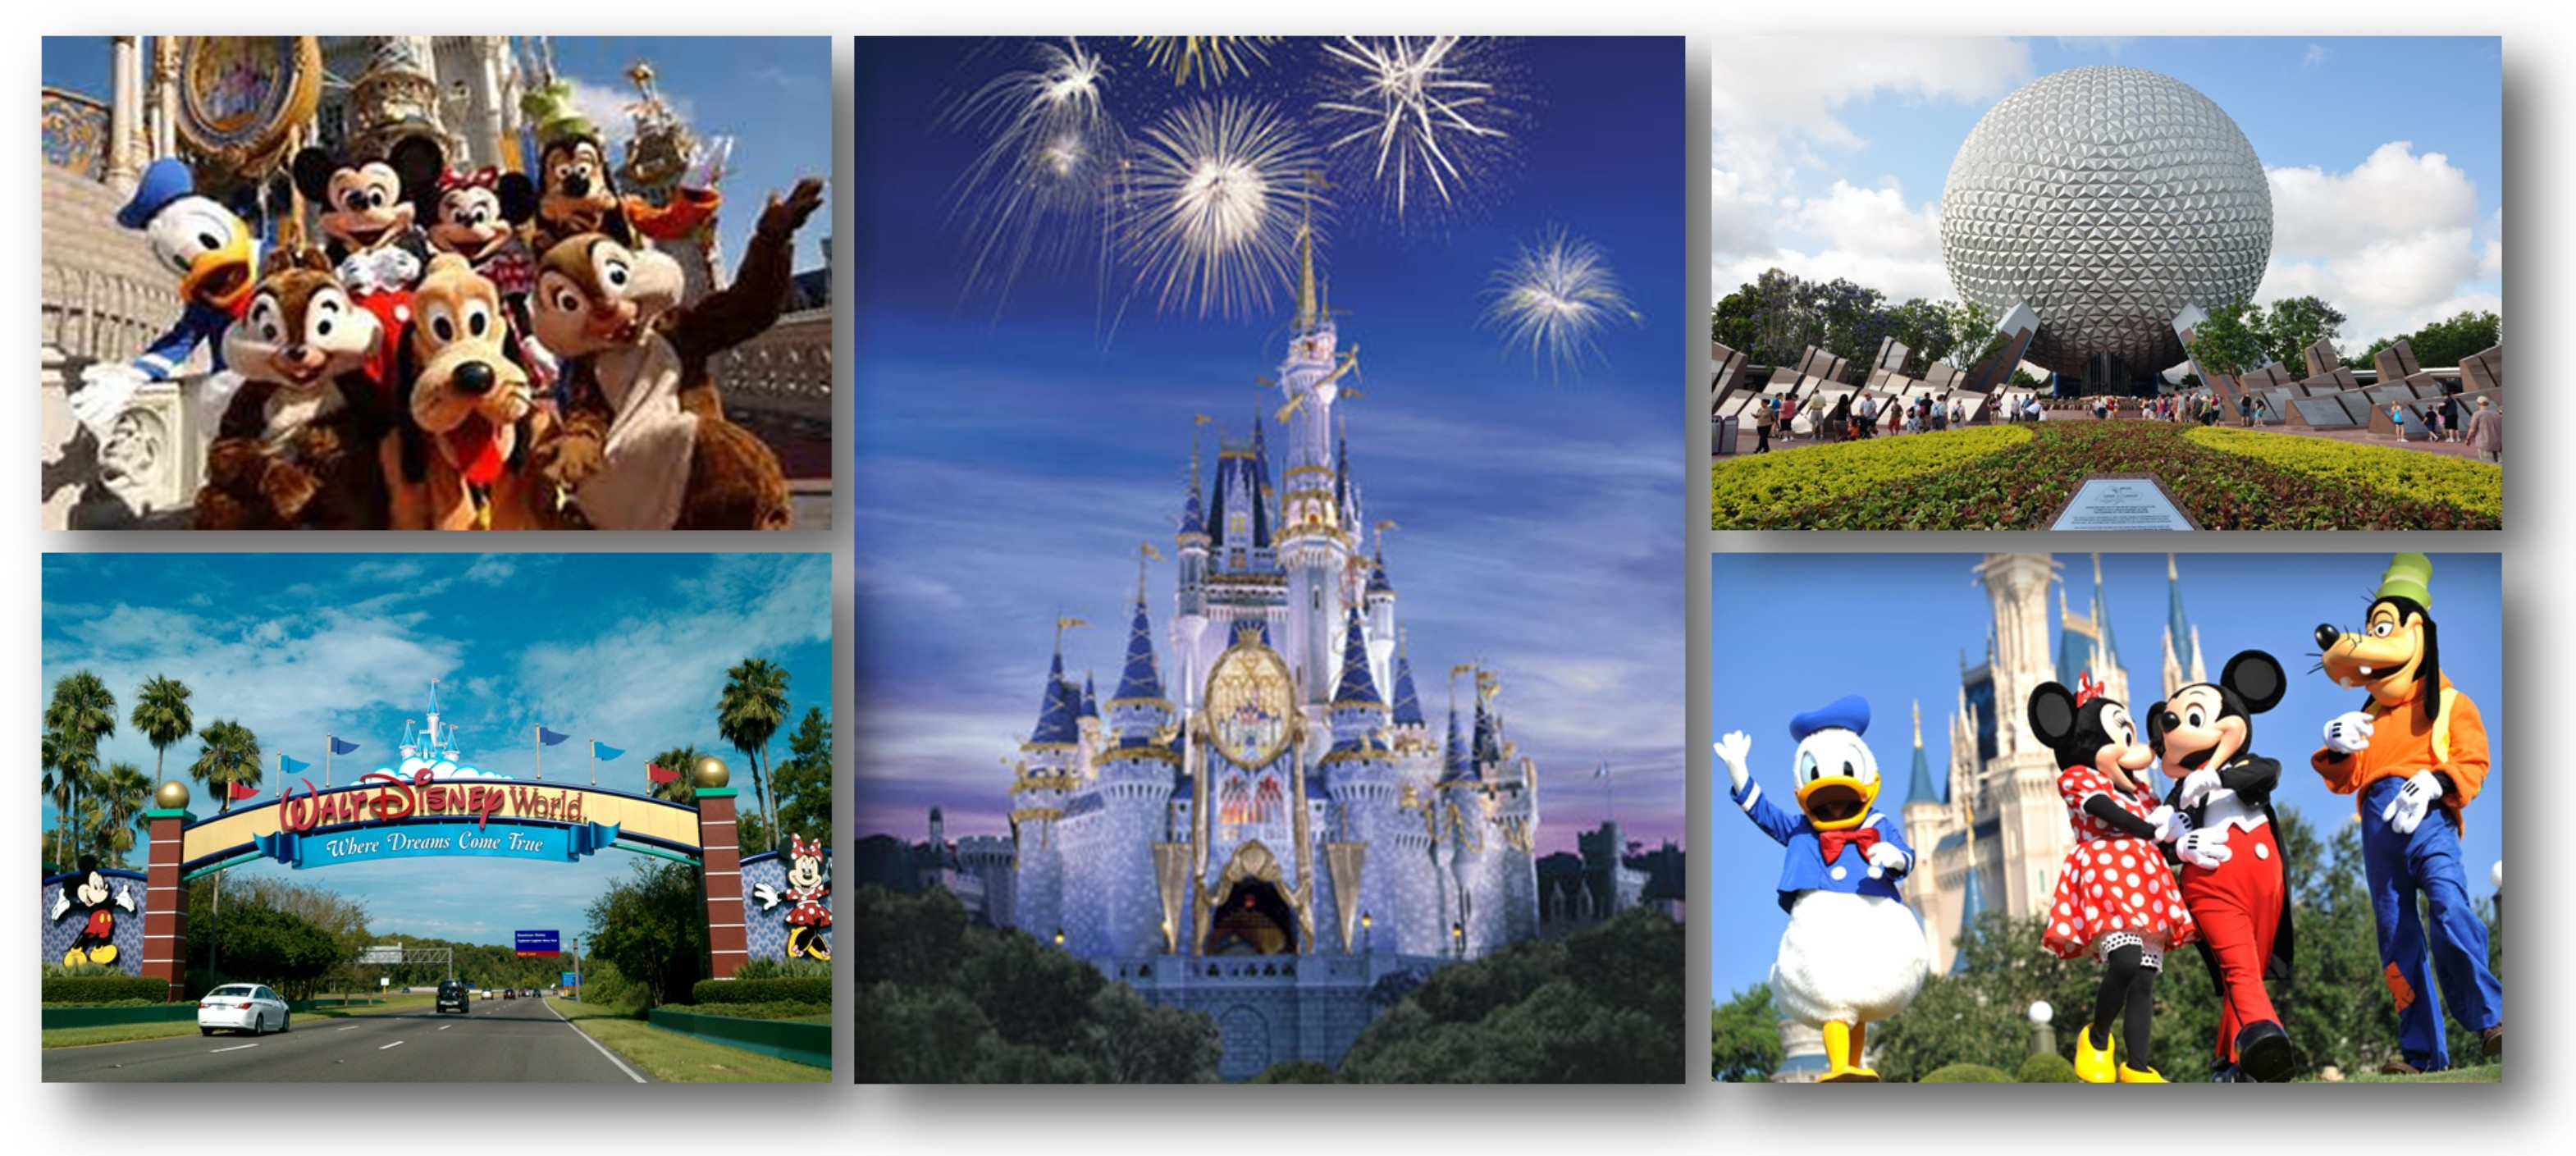 Search For Homes For Sale Near Disney World Florida